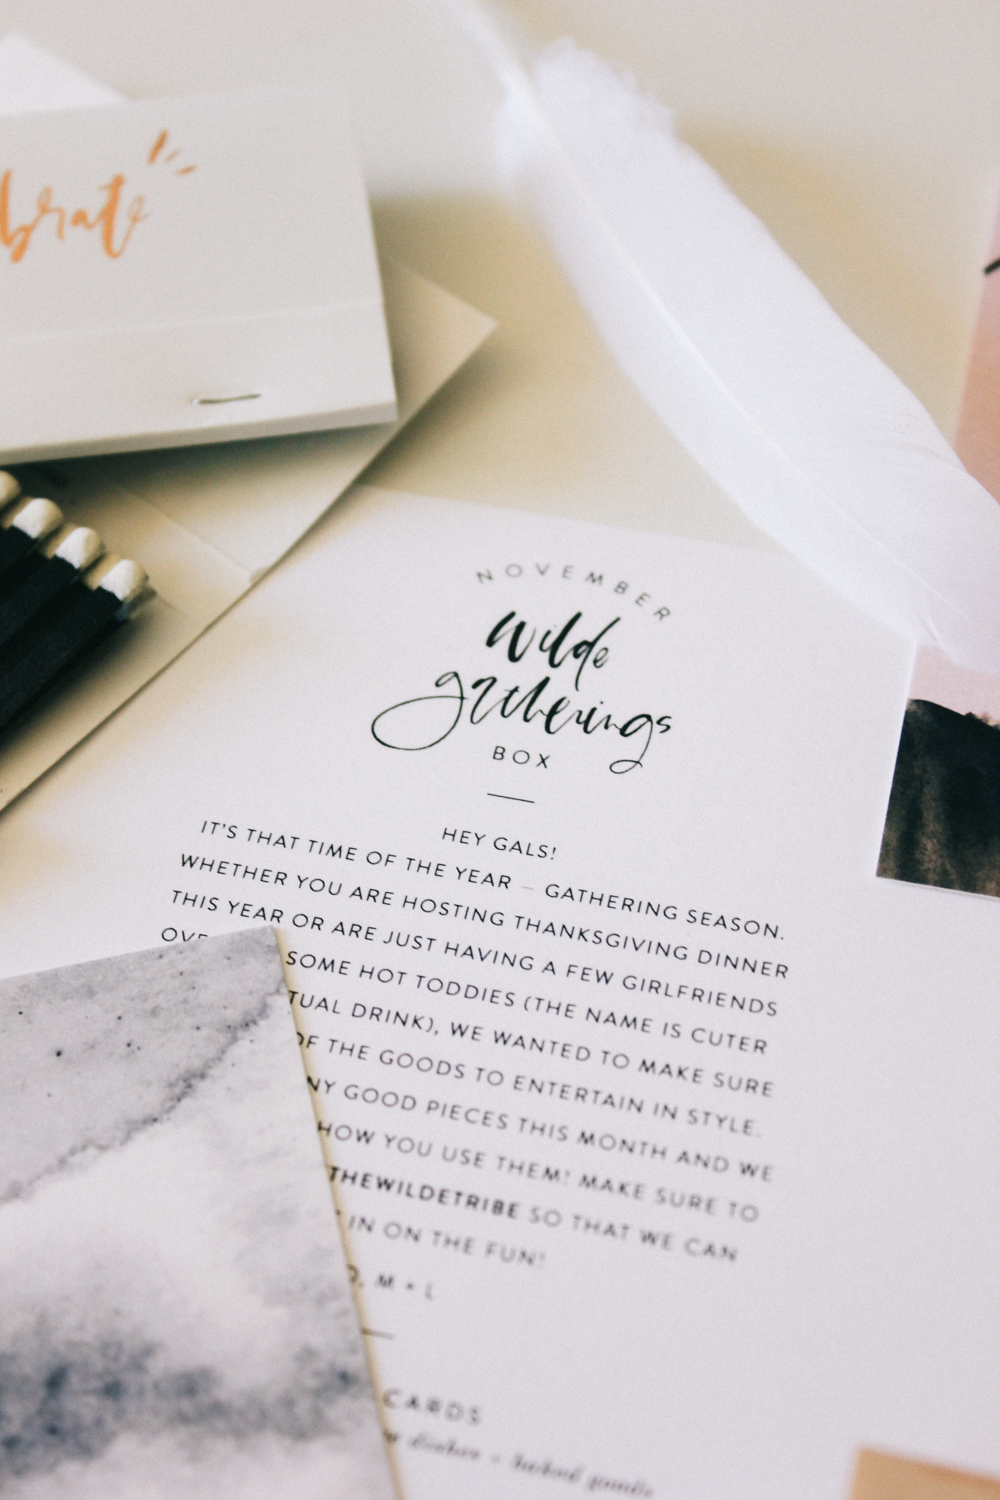 Wilde Gatherings November Stationery Box | Wilde House Paper